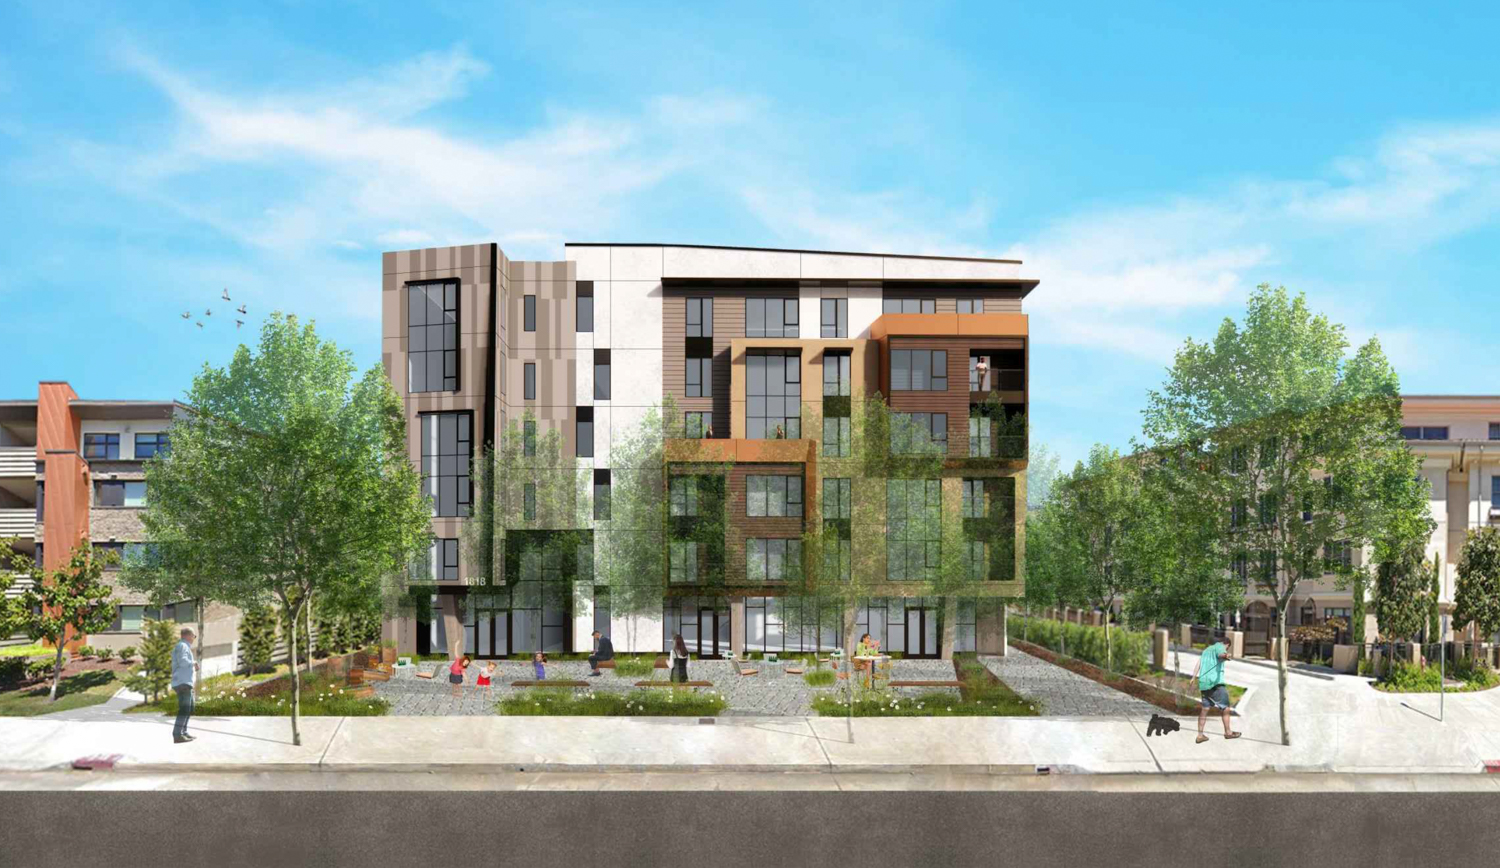 1814-20 Ogden Drive front view, rendering by Levy Design Partners